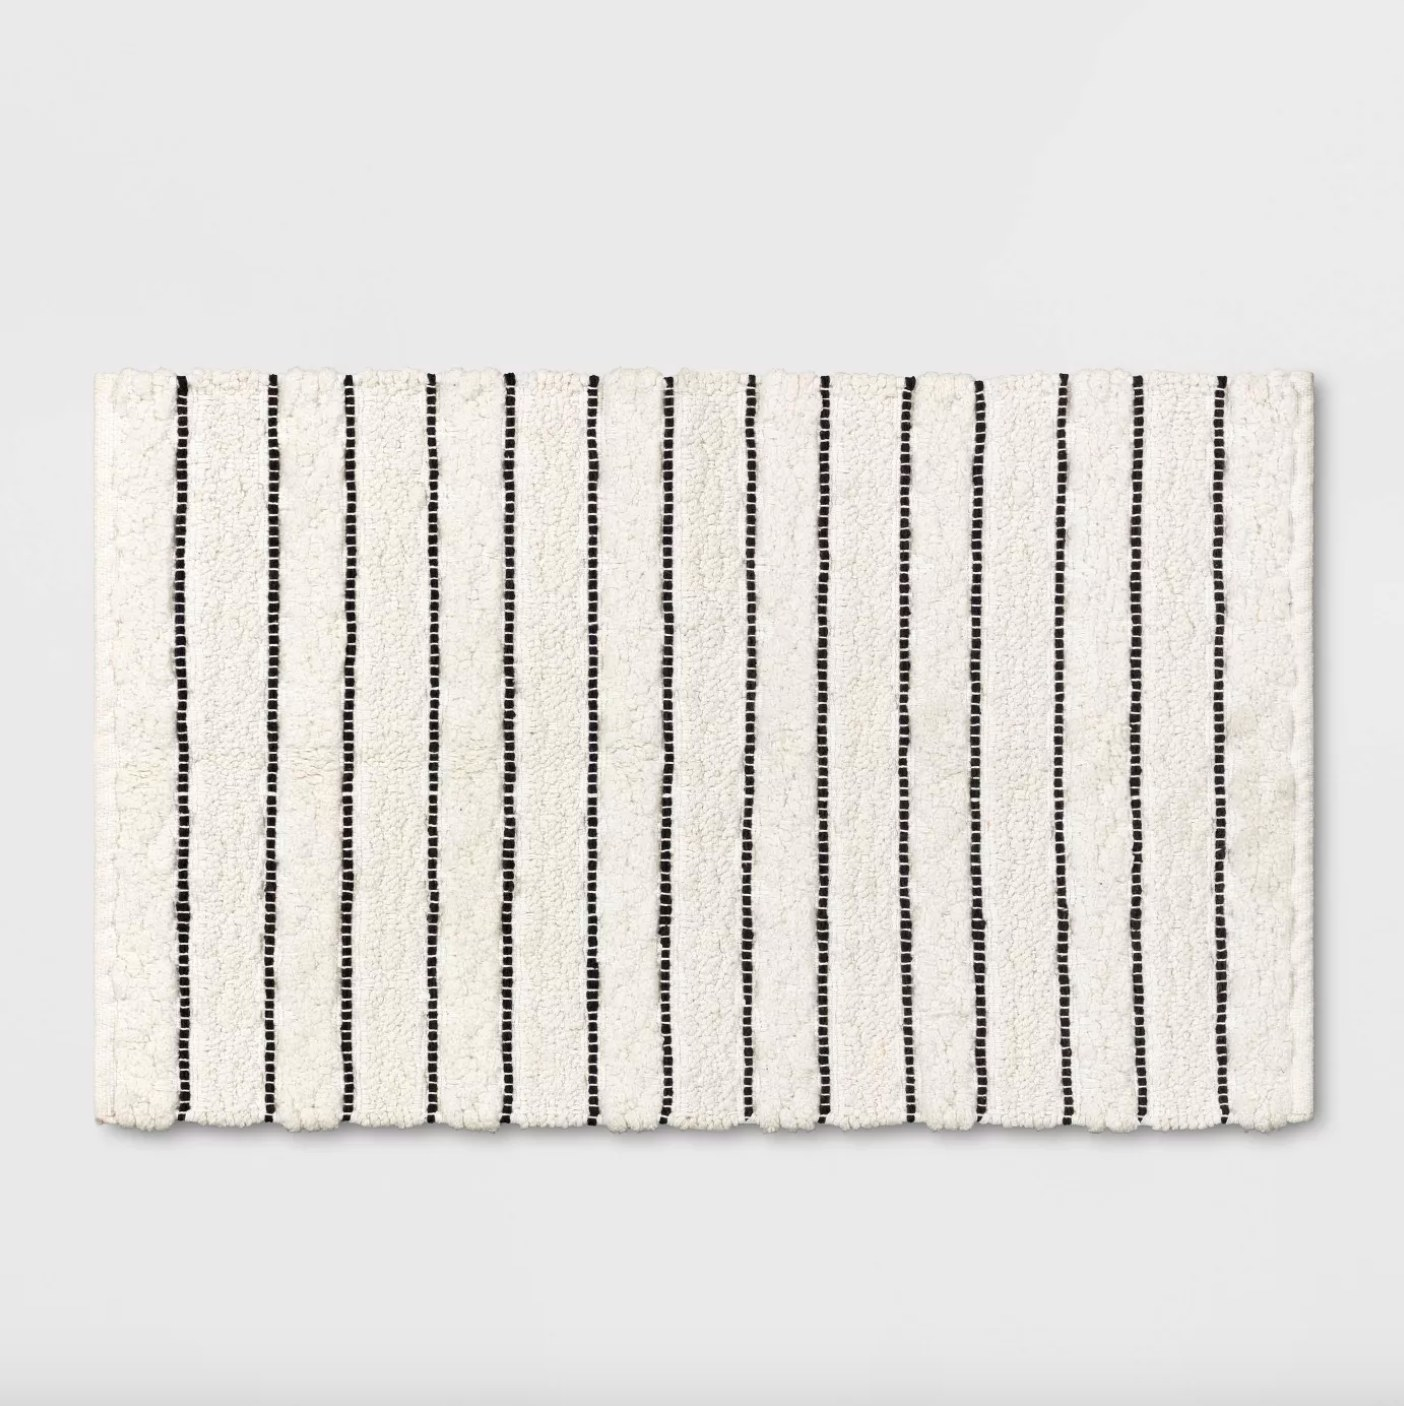 The striped bath mat in white and black